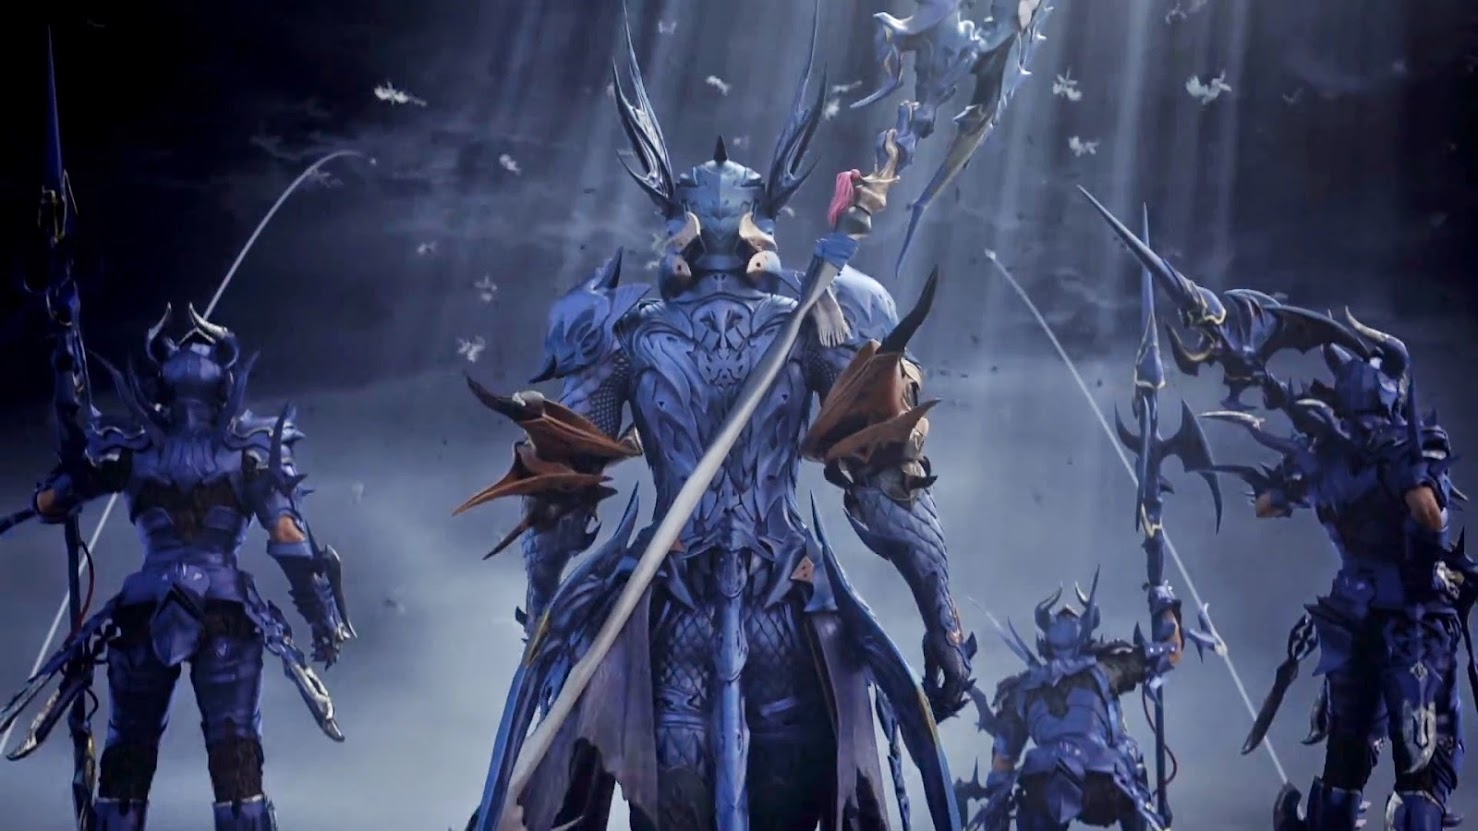 Square Enix Completes Final Fantasy XIV's Developer Diary